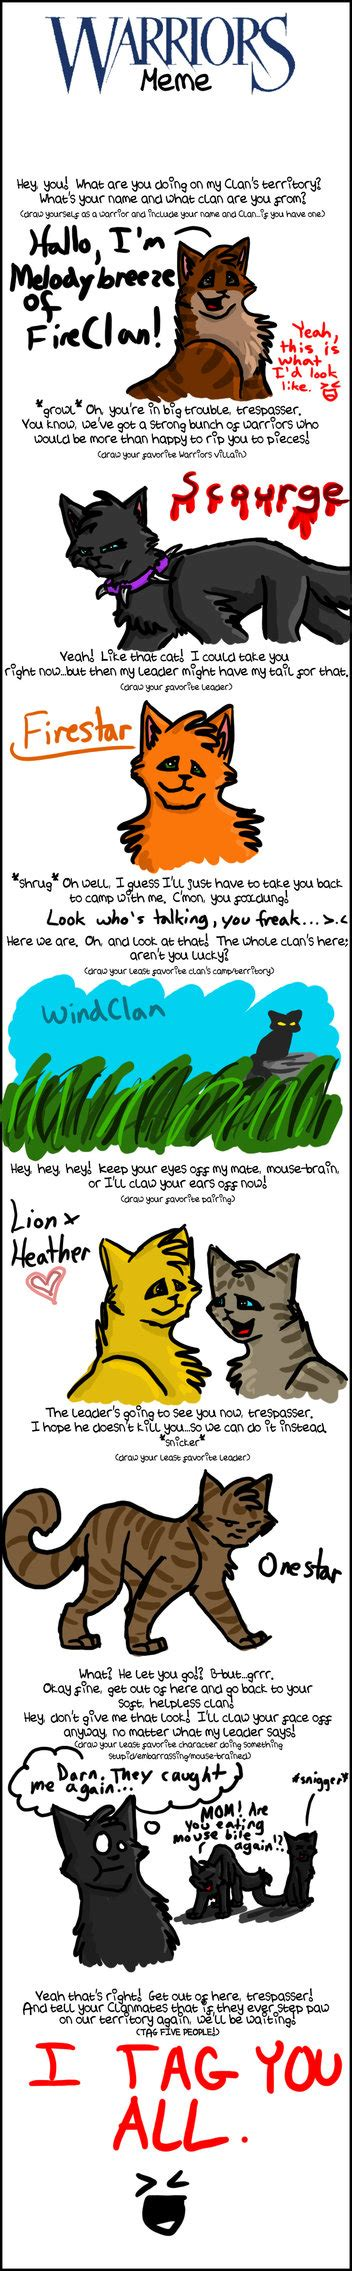 Warrior Cats Meme - warrior cats meme o3o by gingerflight on deviantart